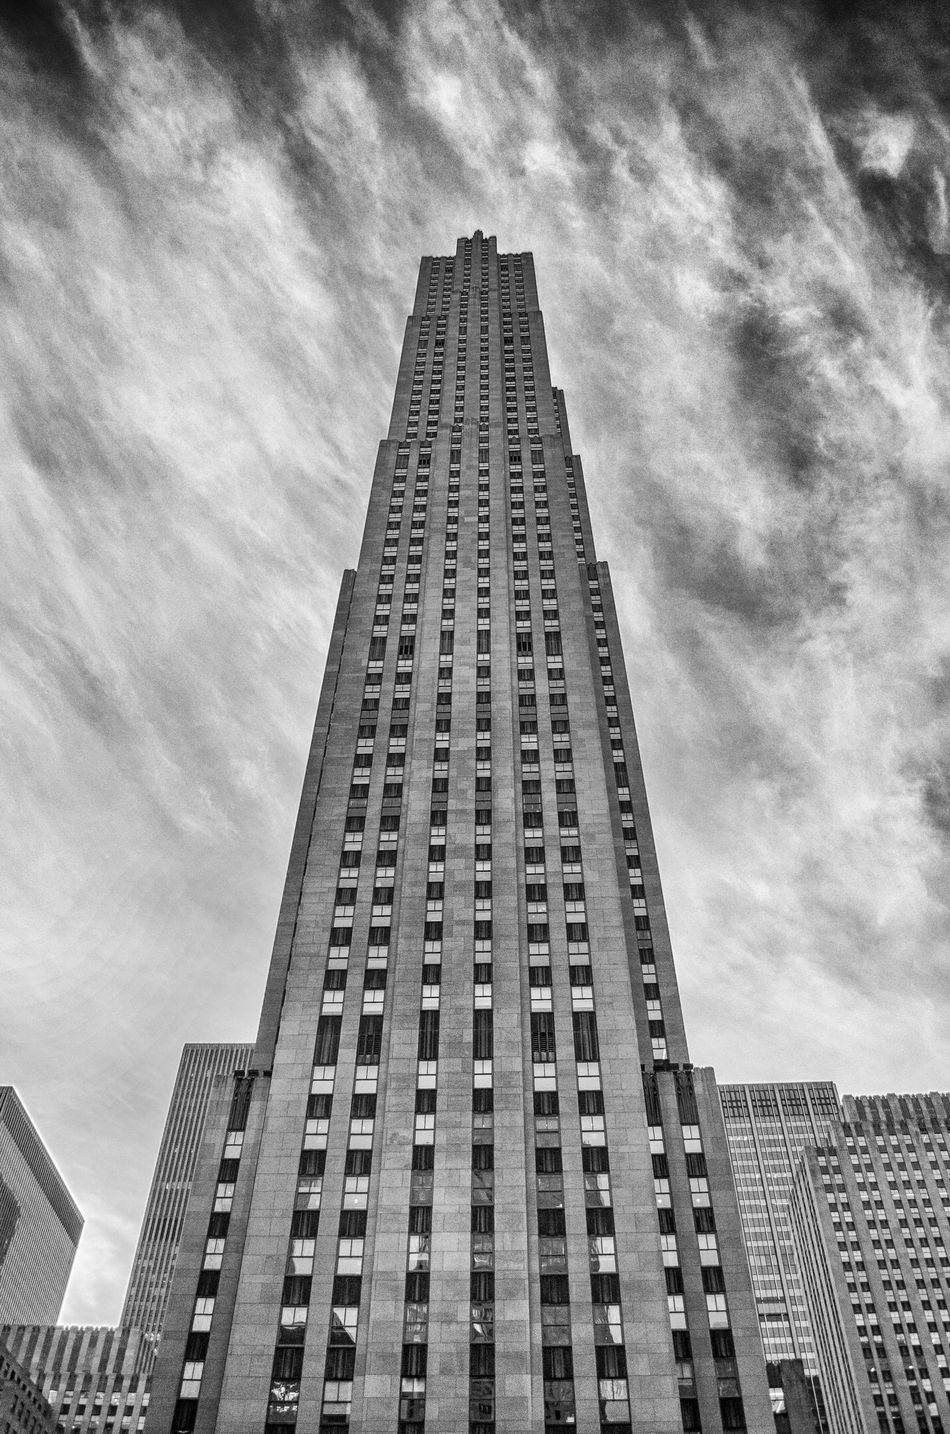 Architecture Black & White Black And White Black And White Photography Building Exterior Built Structure City Day Low Angle View Modern New York New York City No People Outdoors Rockefeller Center Rockefeller Center, New York Rockeffeller Plaza Sky Skyscraper Tall Tower